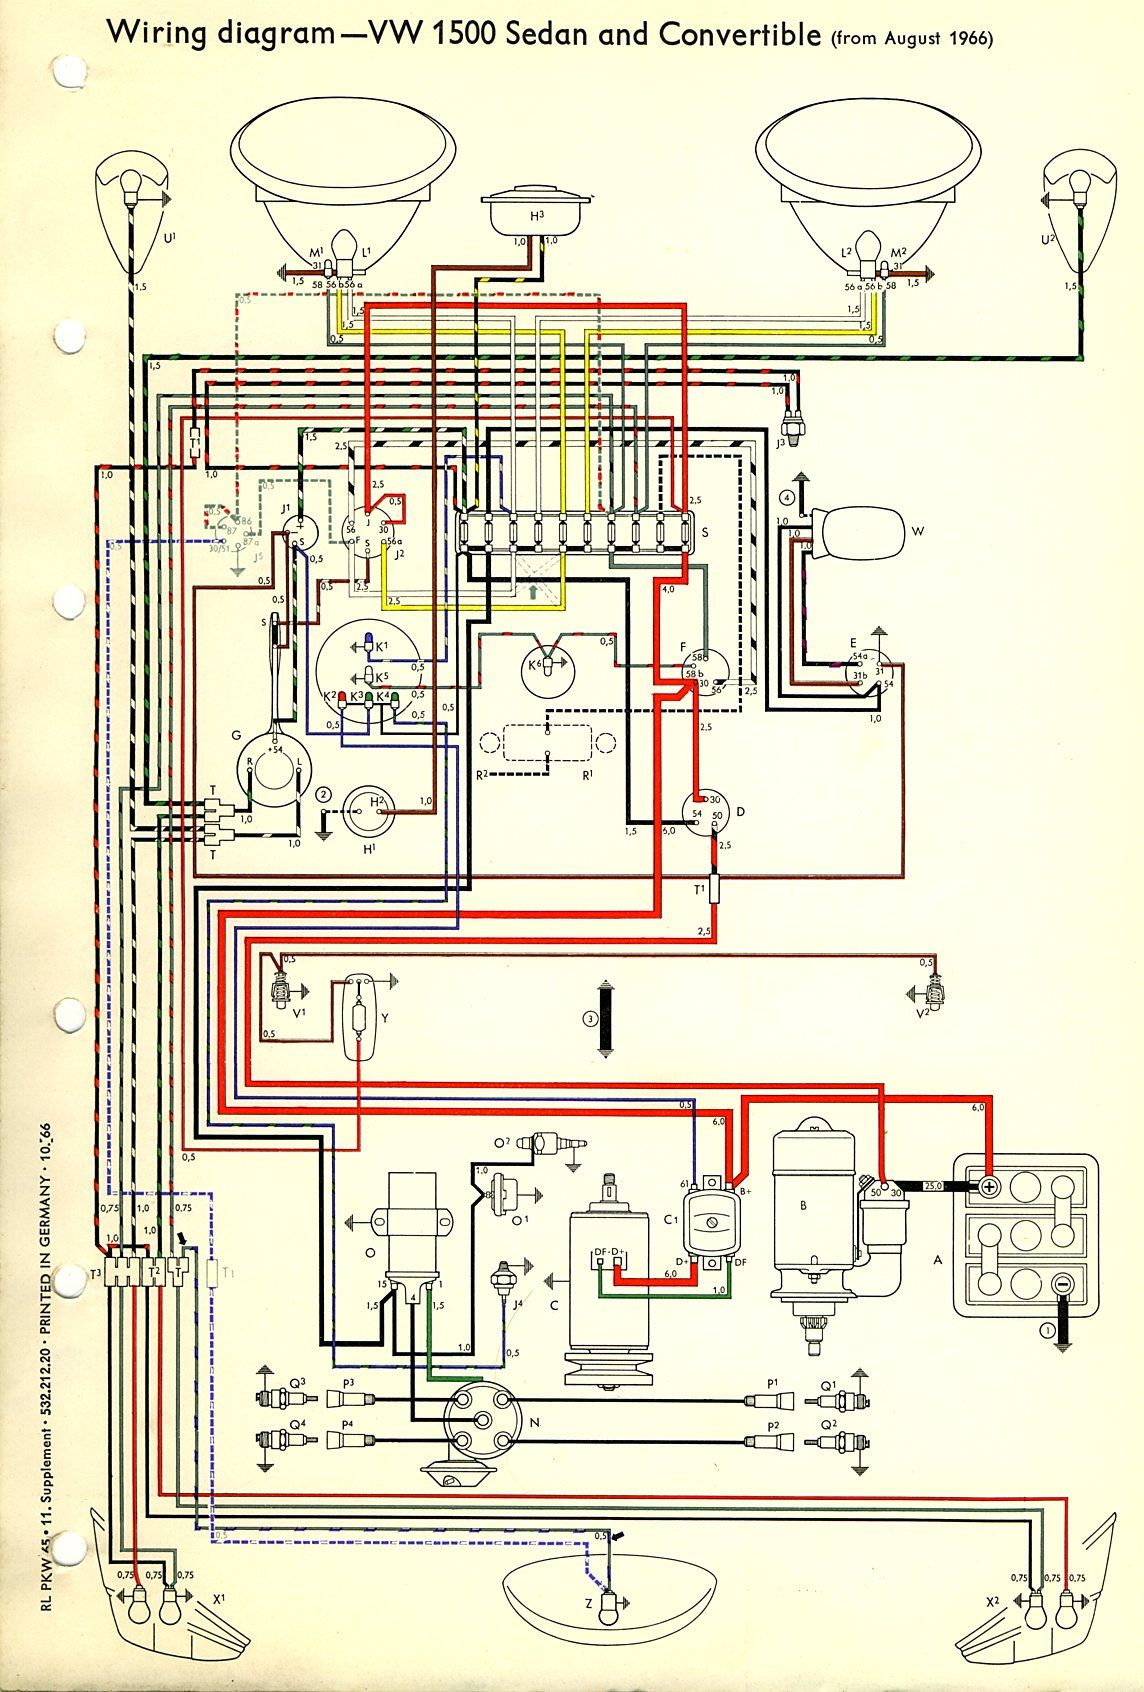 DIAGRAM] 1973 Vw Super Beetle Wiring Diagram FULL Version HD Quality Wiring  Diagram - WIRINGCOVERINGPDF.PLURIFIT.FRWiring And Fuse Database